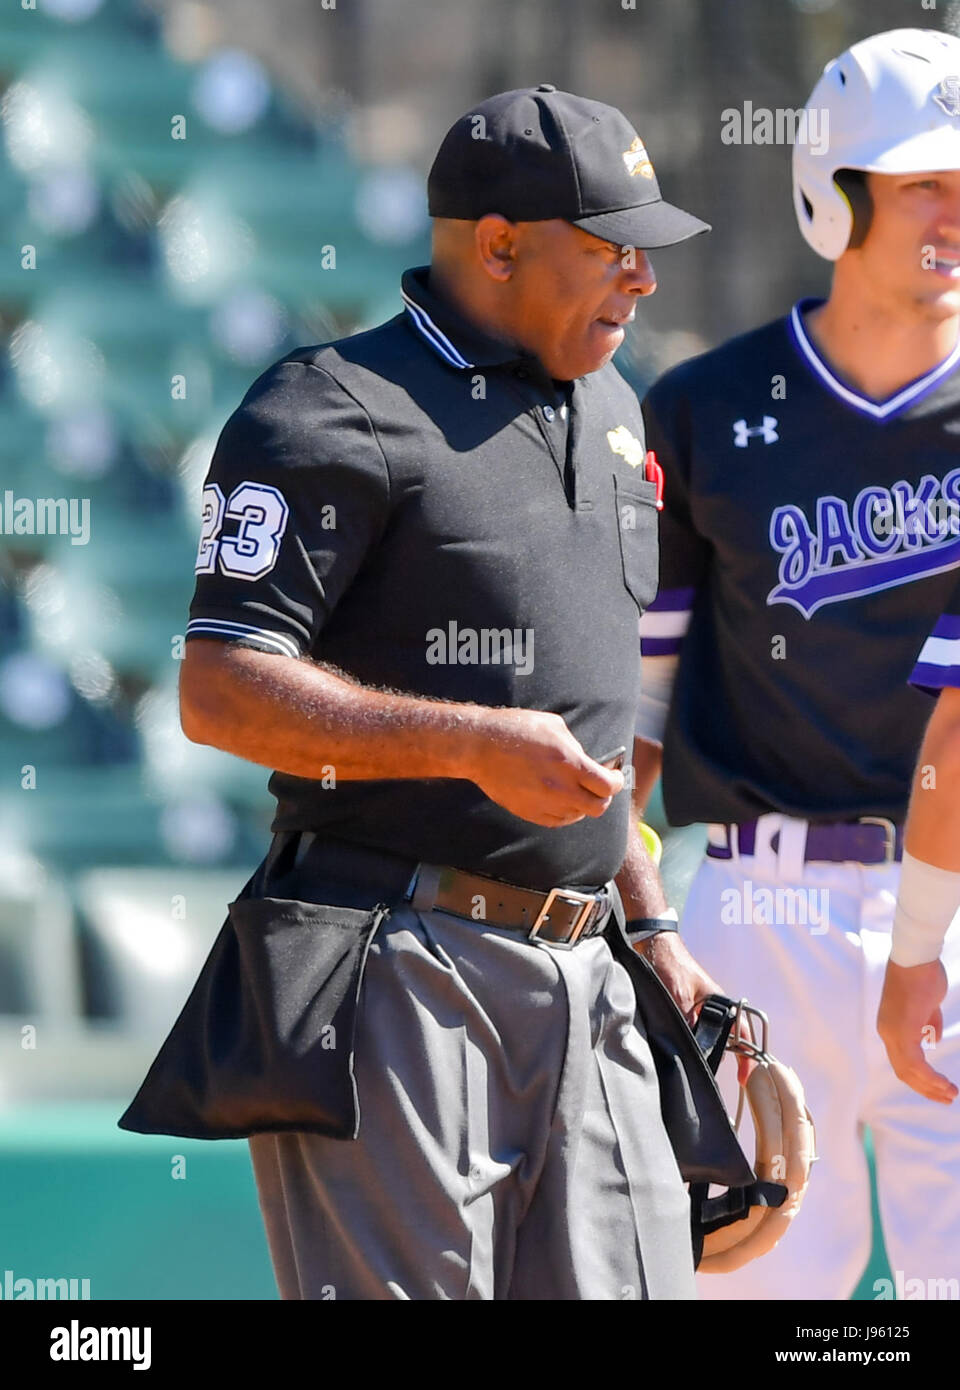 MAY 25, 2017 -- Home Plate Umpire Robert Holloway During